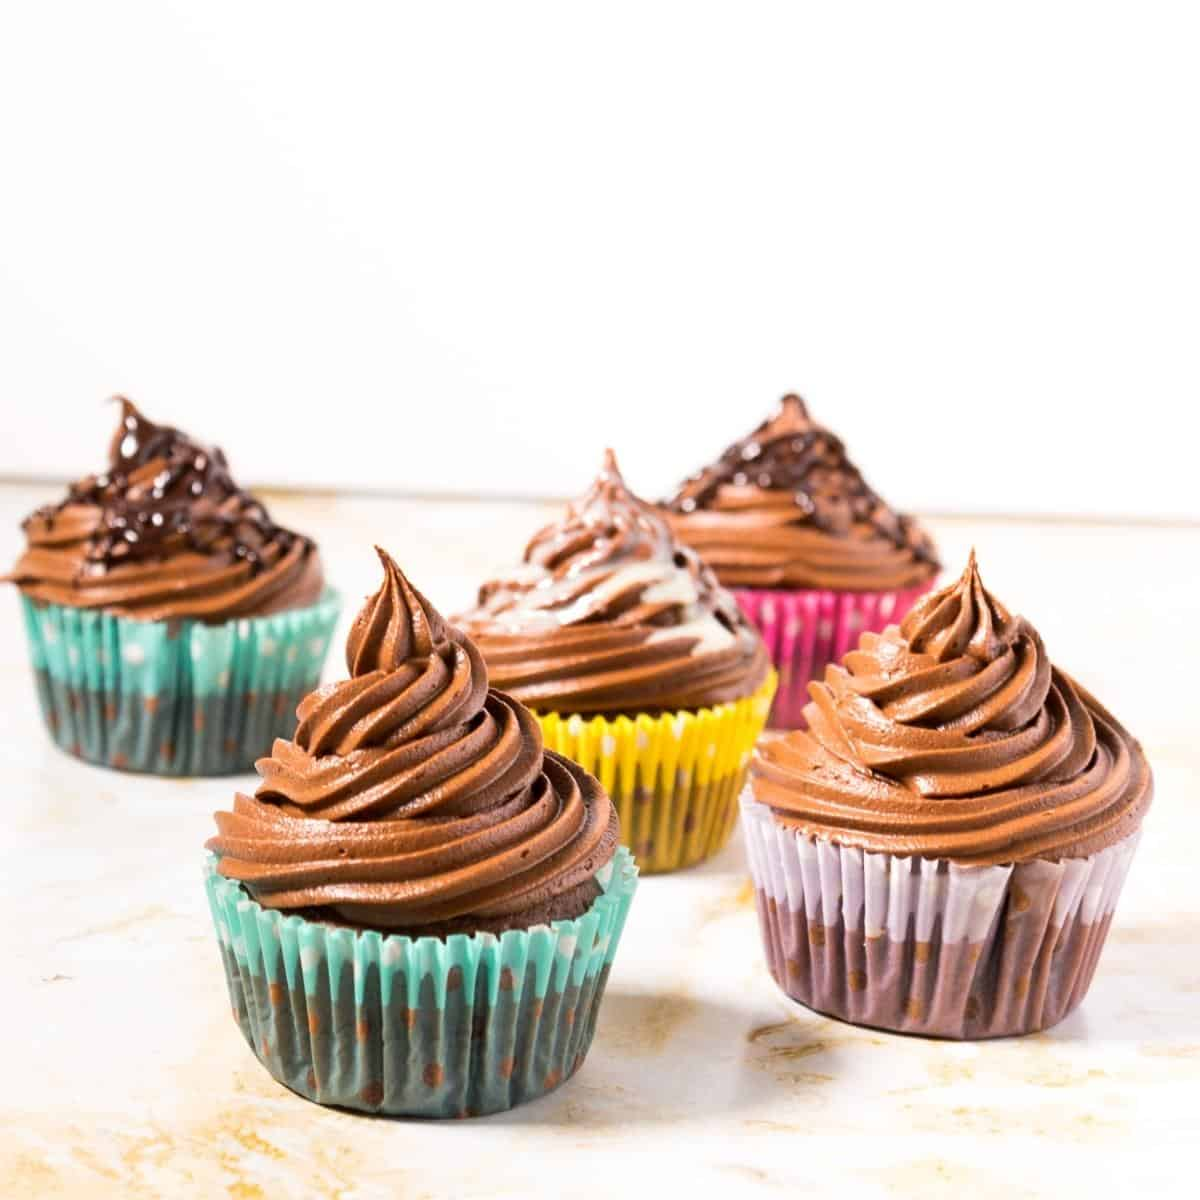 Five frosted chocolate cupcakes